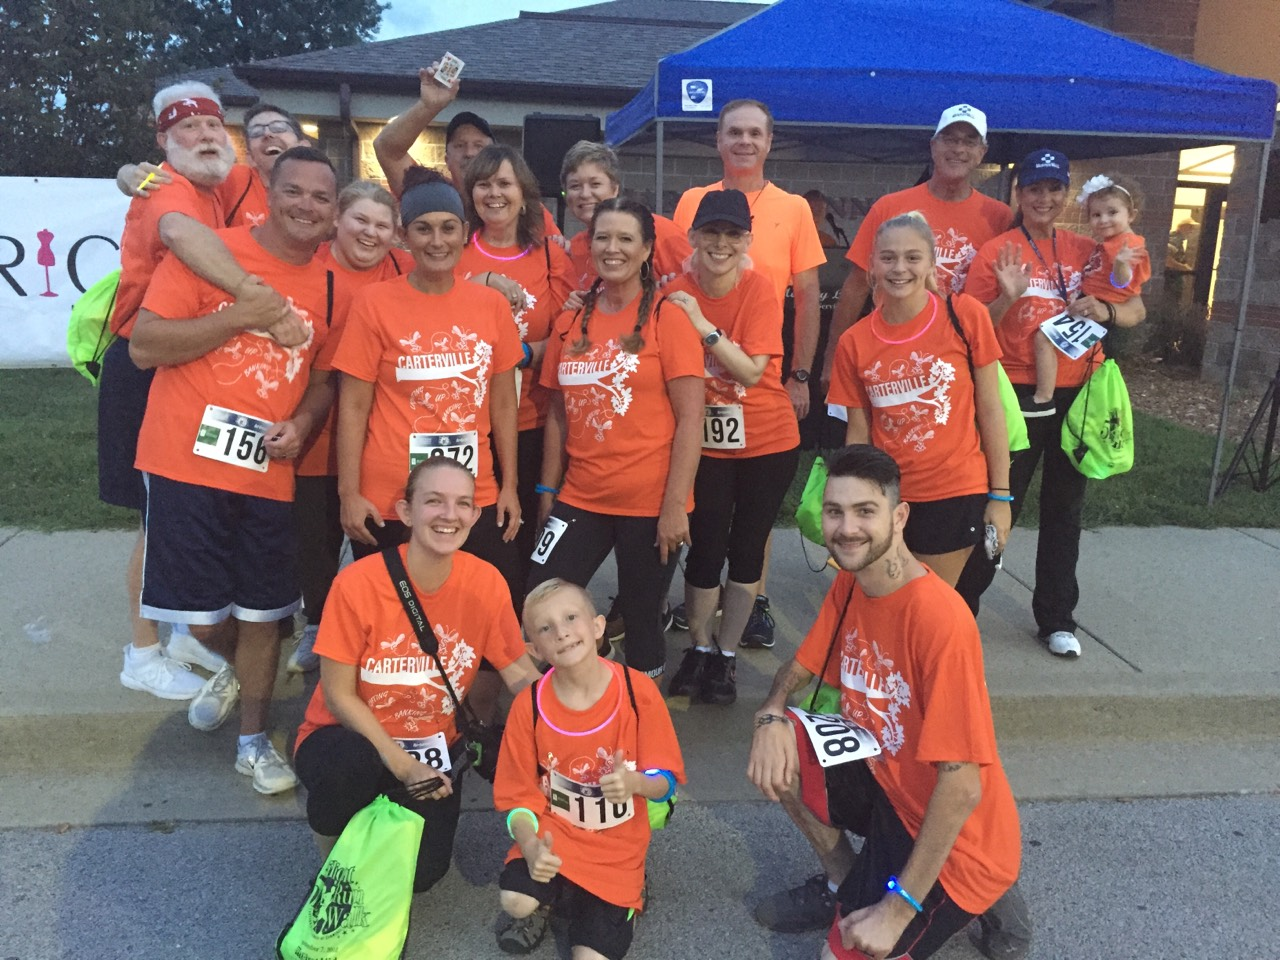 A group of Murphy-Wall State Bank and Trust Company gather for a picture before the 2018 Carterville Chamber's Glo 5K Run/Walk